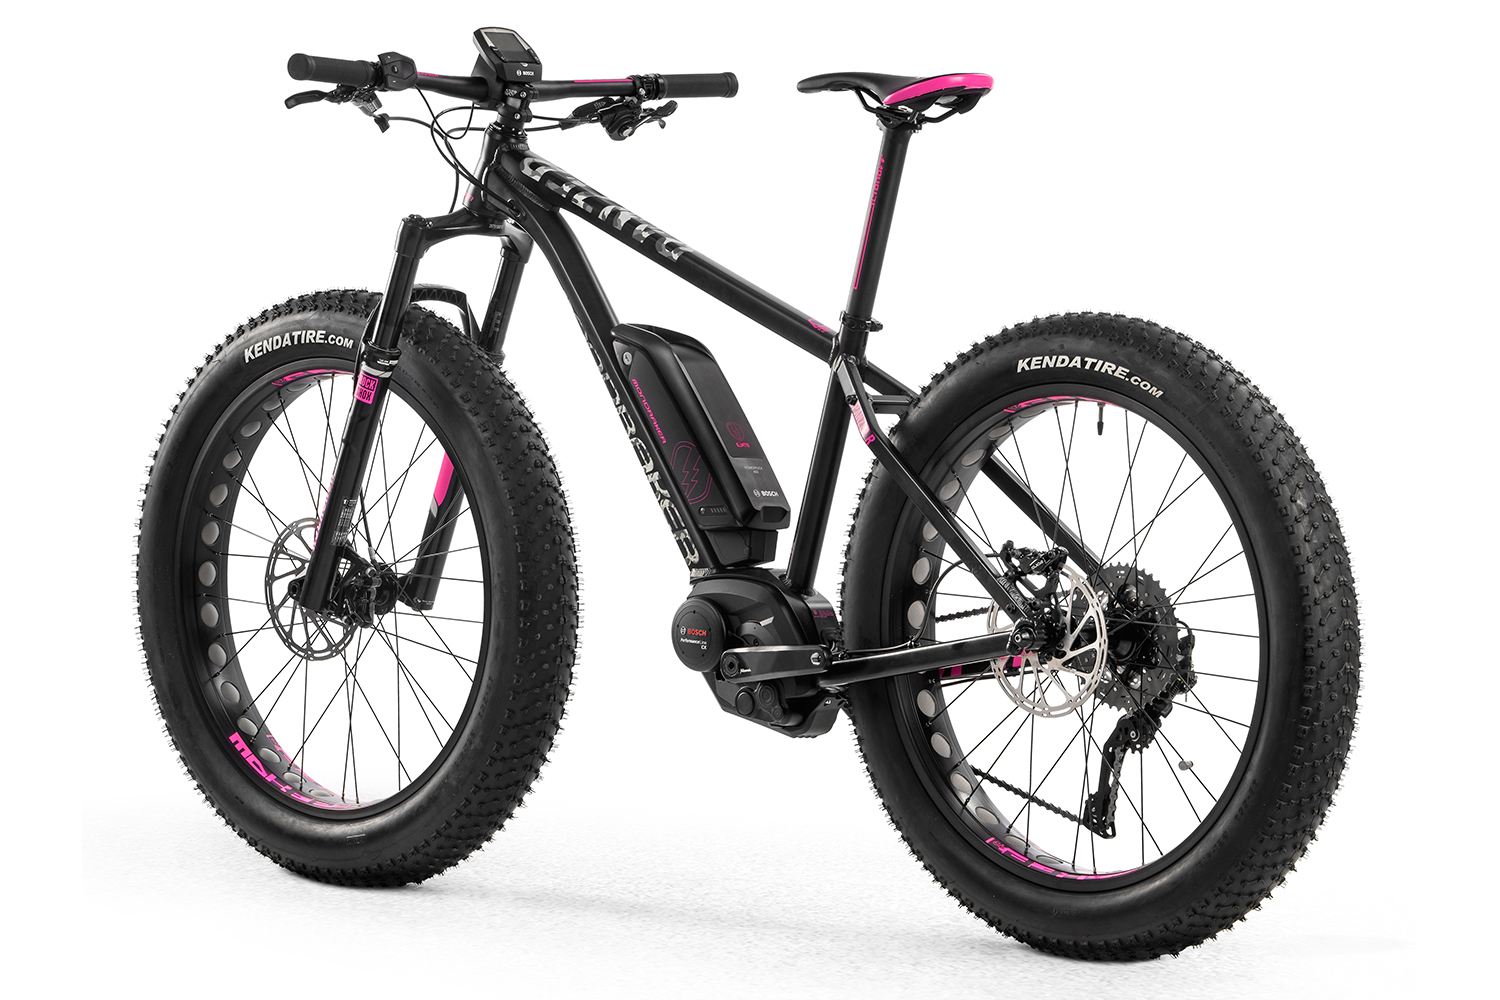 mondraker e panzer r 2016 pedelec fatbike mit 4 zoll. Black Bedroom Furniture Sets. Home Design Ideas